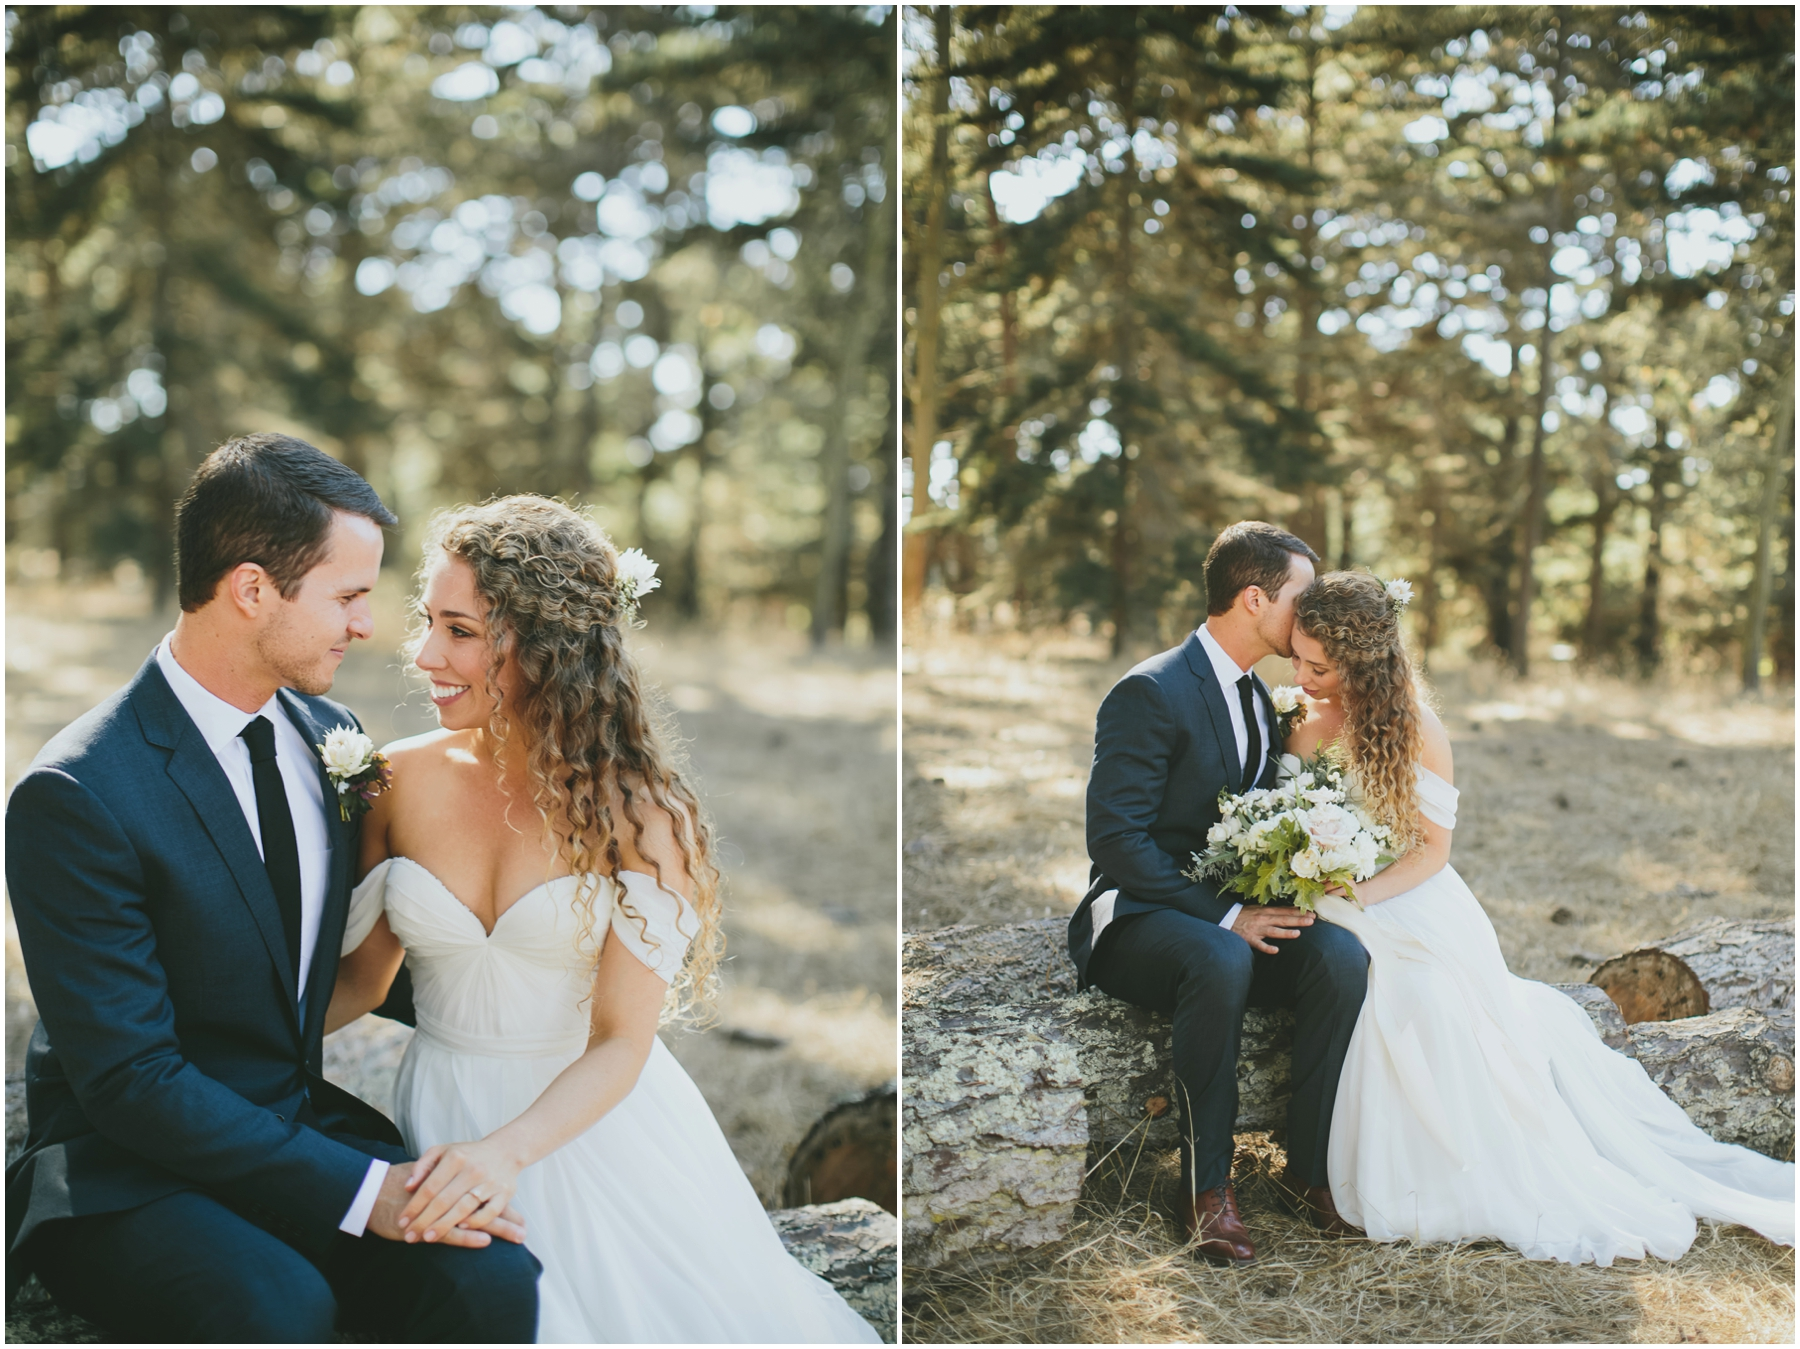 Emily+Paul-WEDDING_KellyBoitanoPhotography_0044